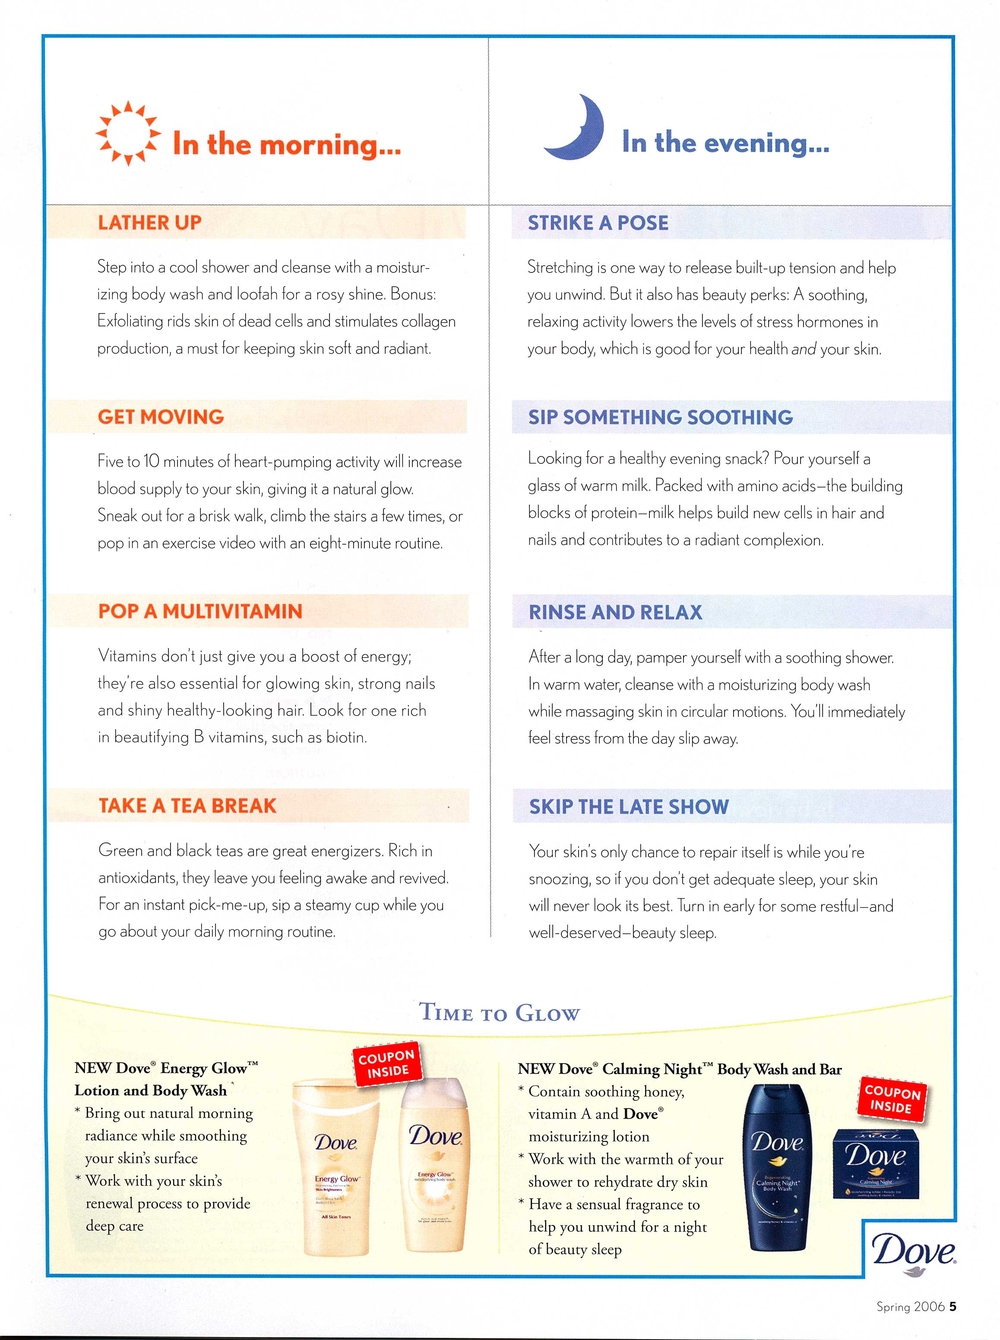 Homebasics_Skincare_Dove_p2.jpg